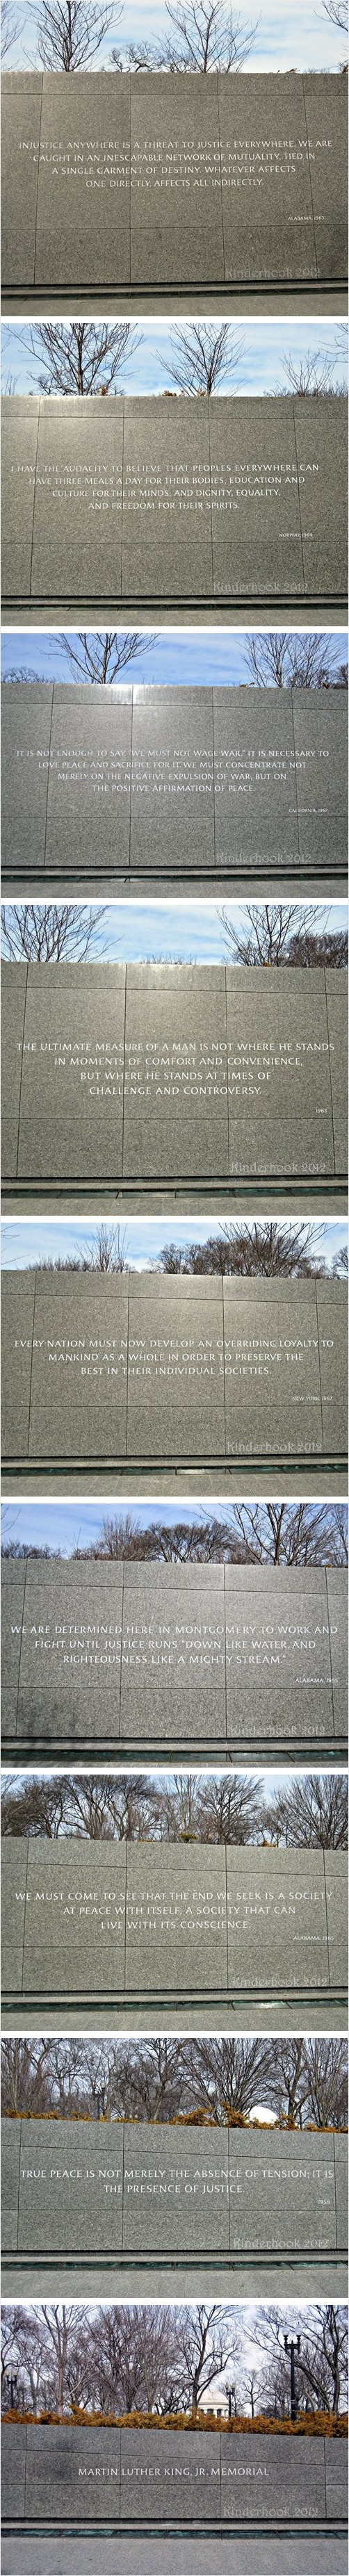 MLK, Jr. National Memorial: Quotes on North Wall